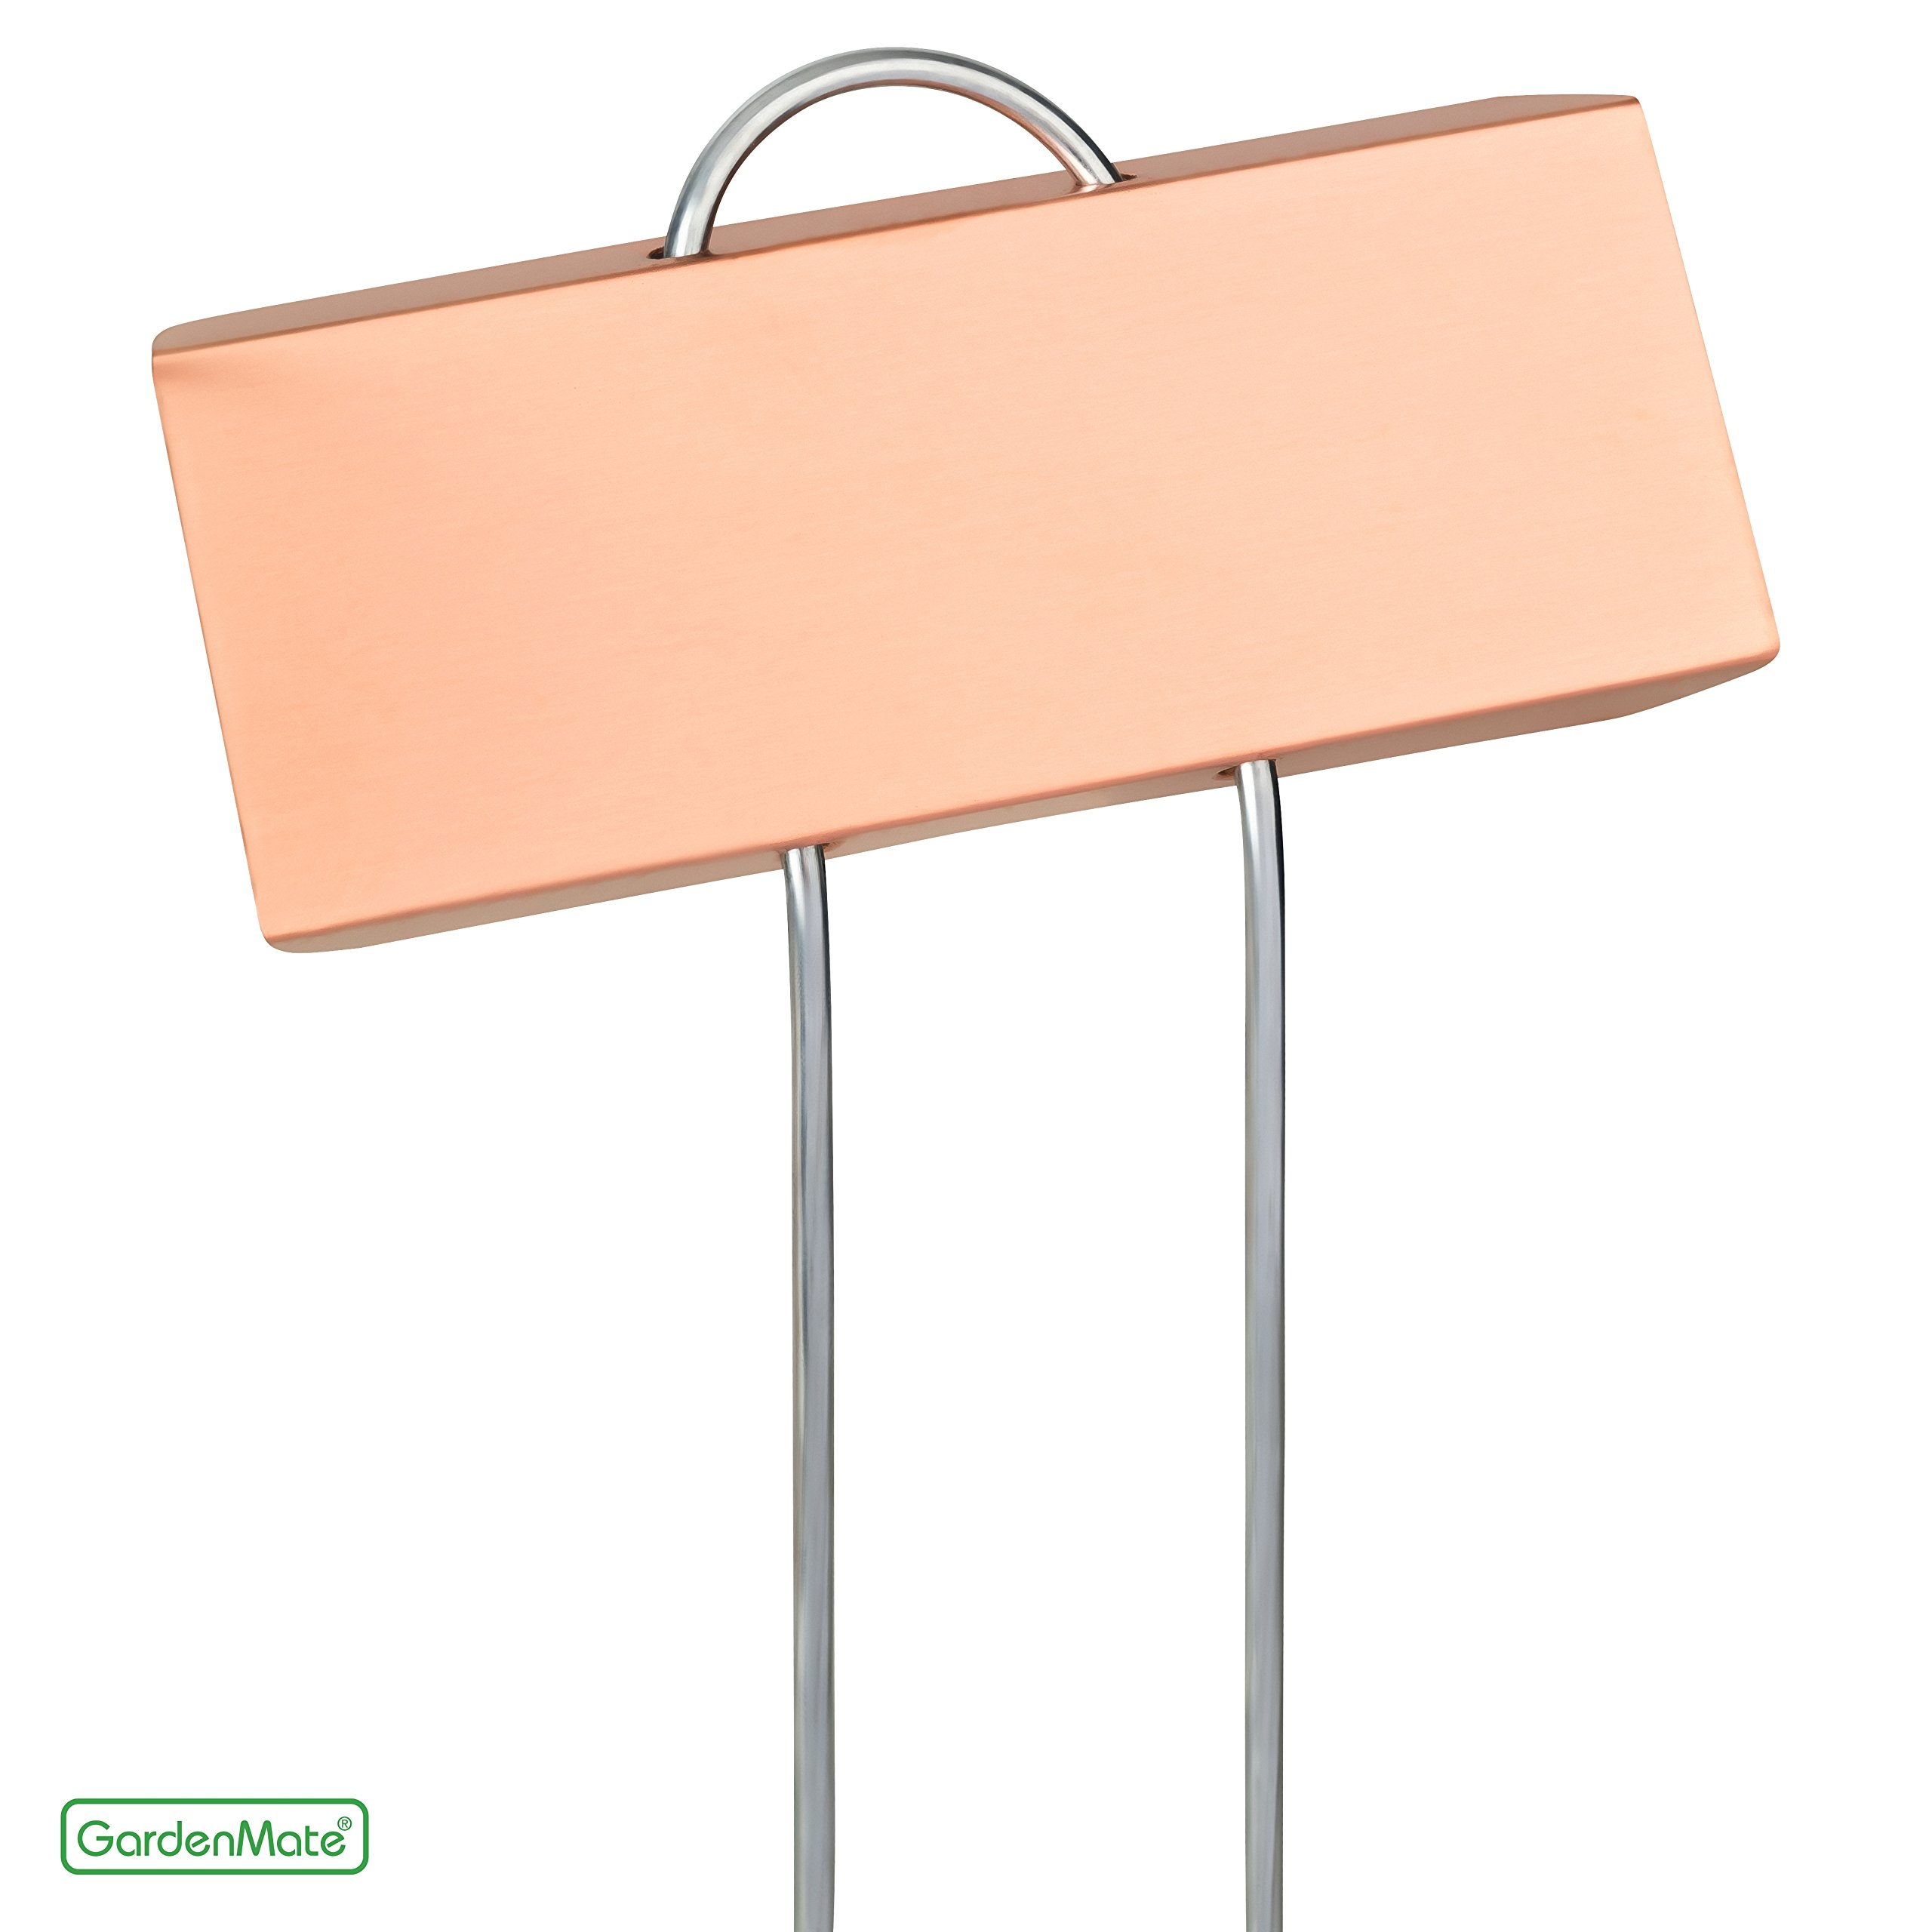 GardenMate 25-Pack 11.5'' tall Metal Plant Label LARGE COPPER with 3 1/2'' x 1 1/4'' labeling tag